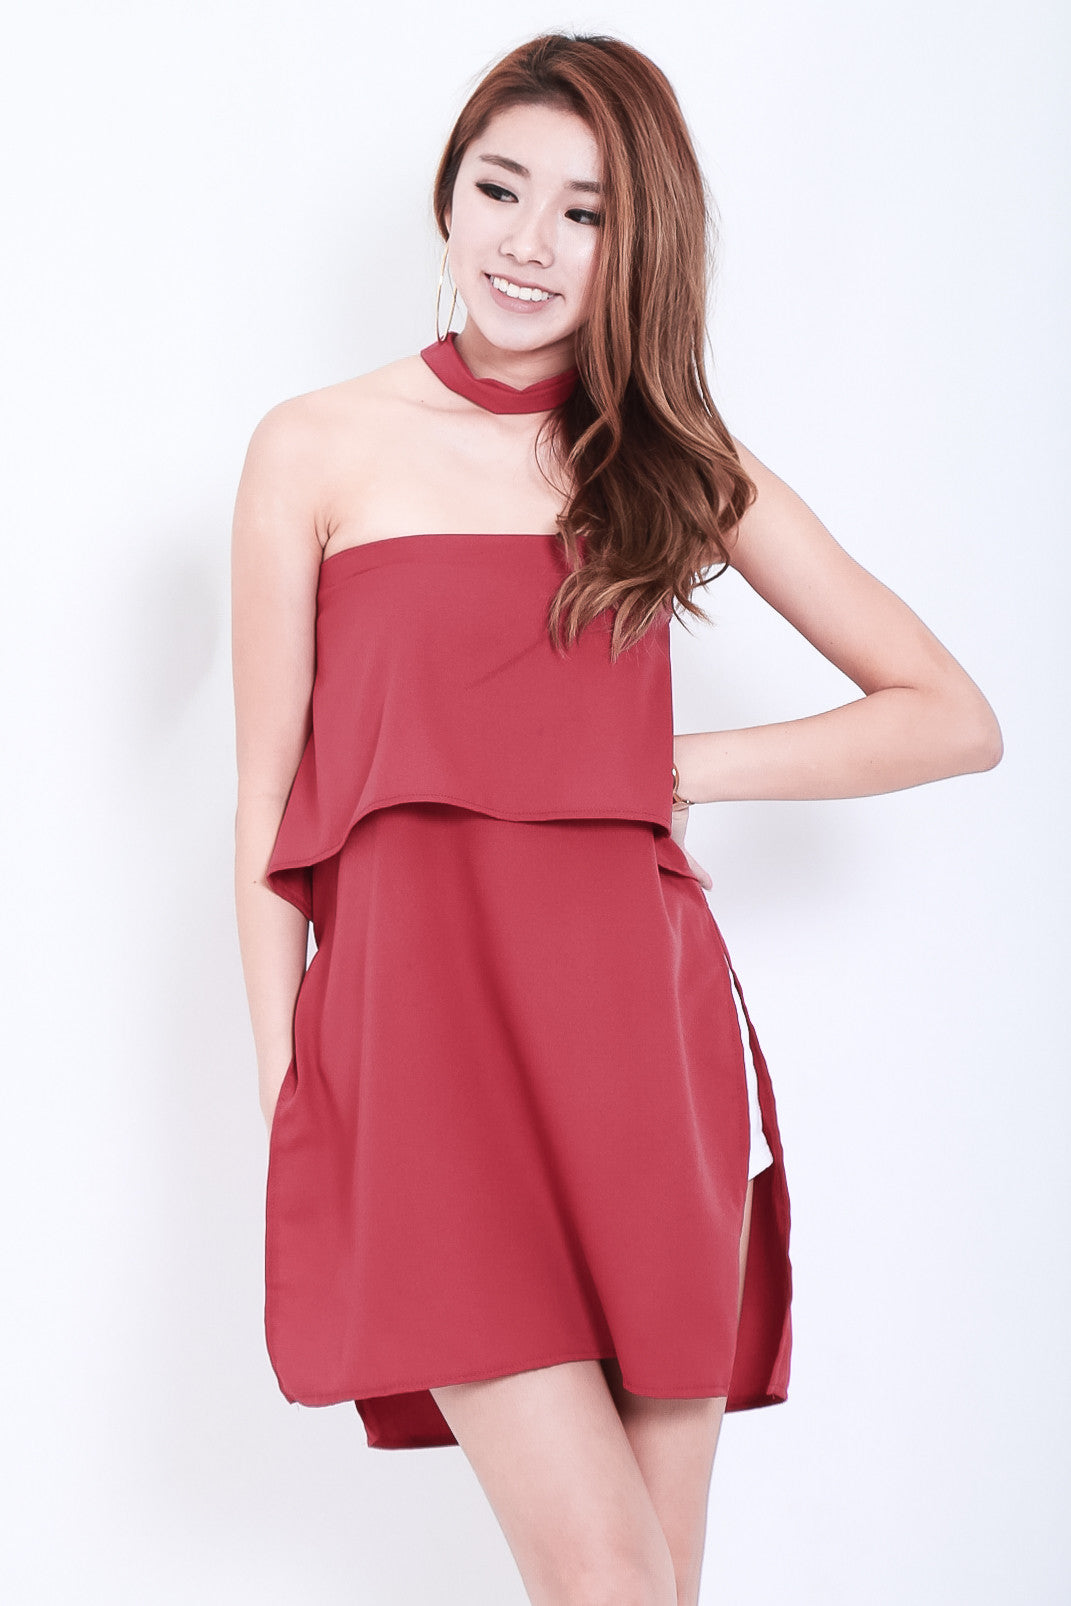 OPEN SLIT TOP WITH CHOKER IN WINE - TOPAZETTE